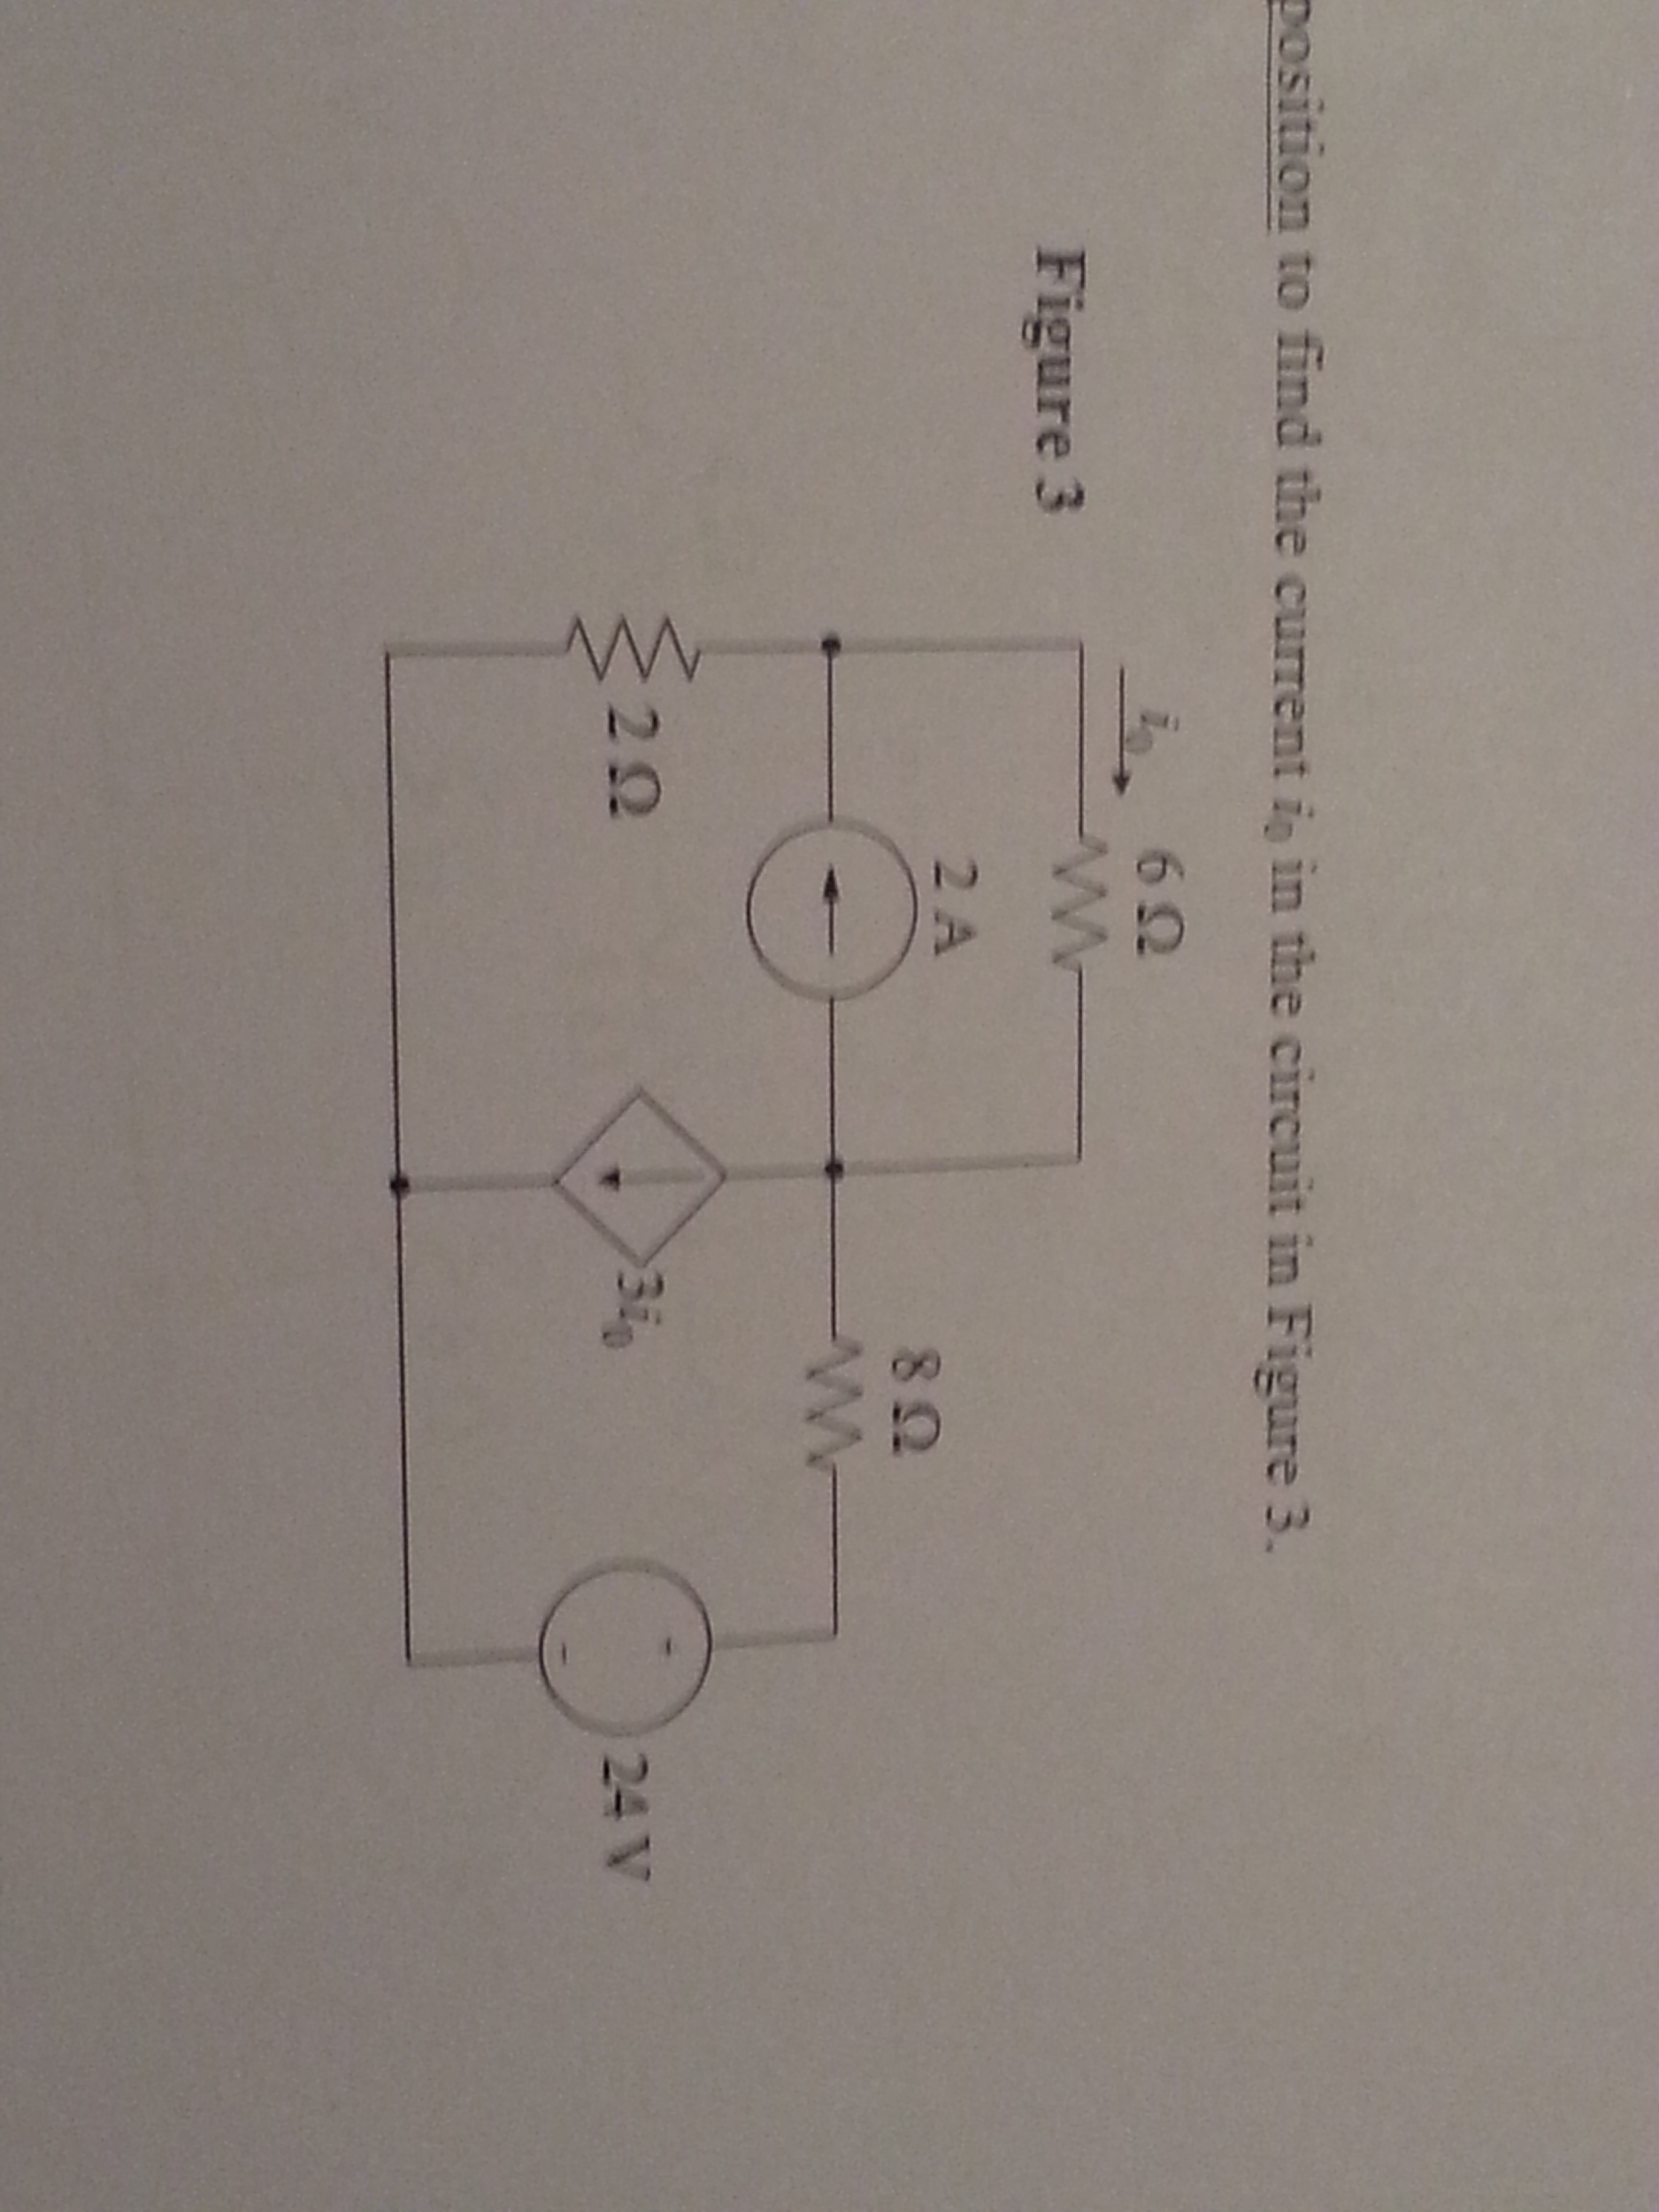 position to find the current i0 the circuit in Fig